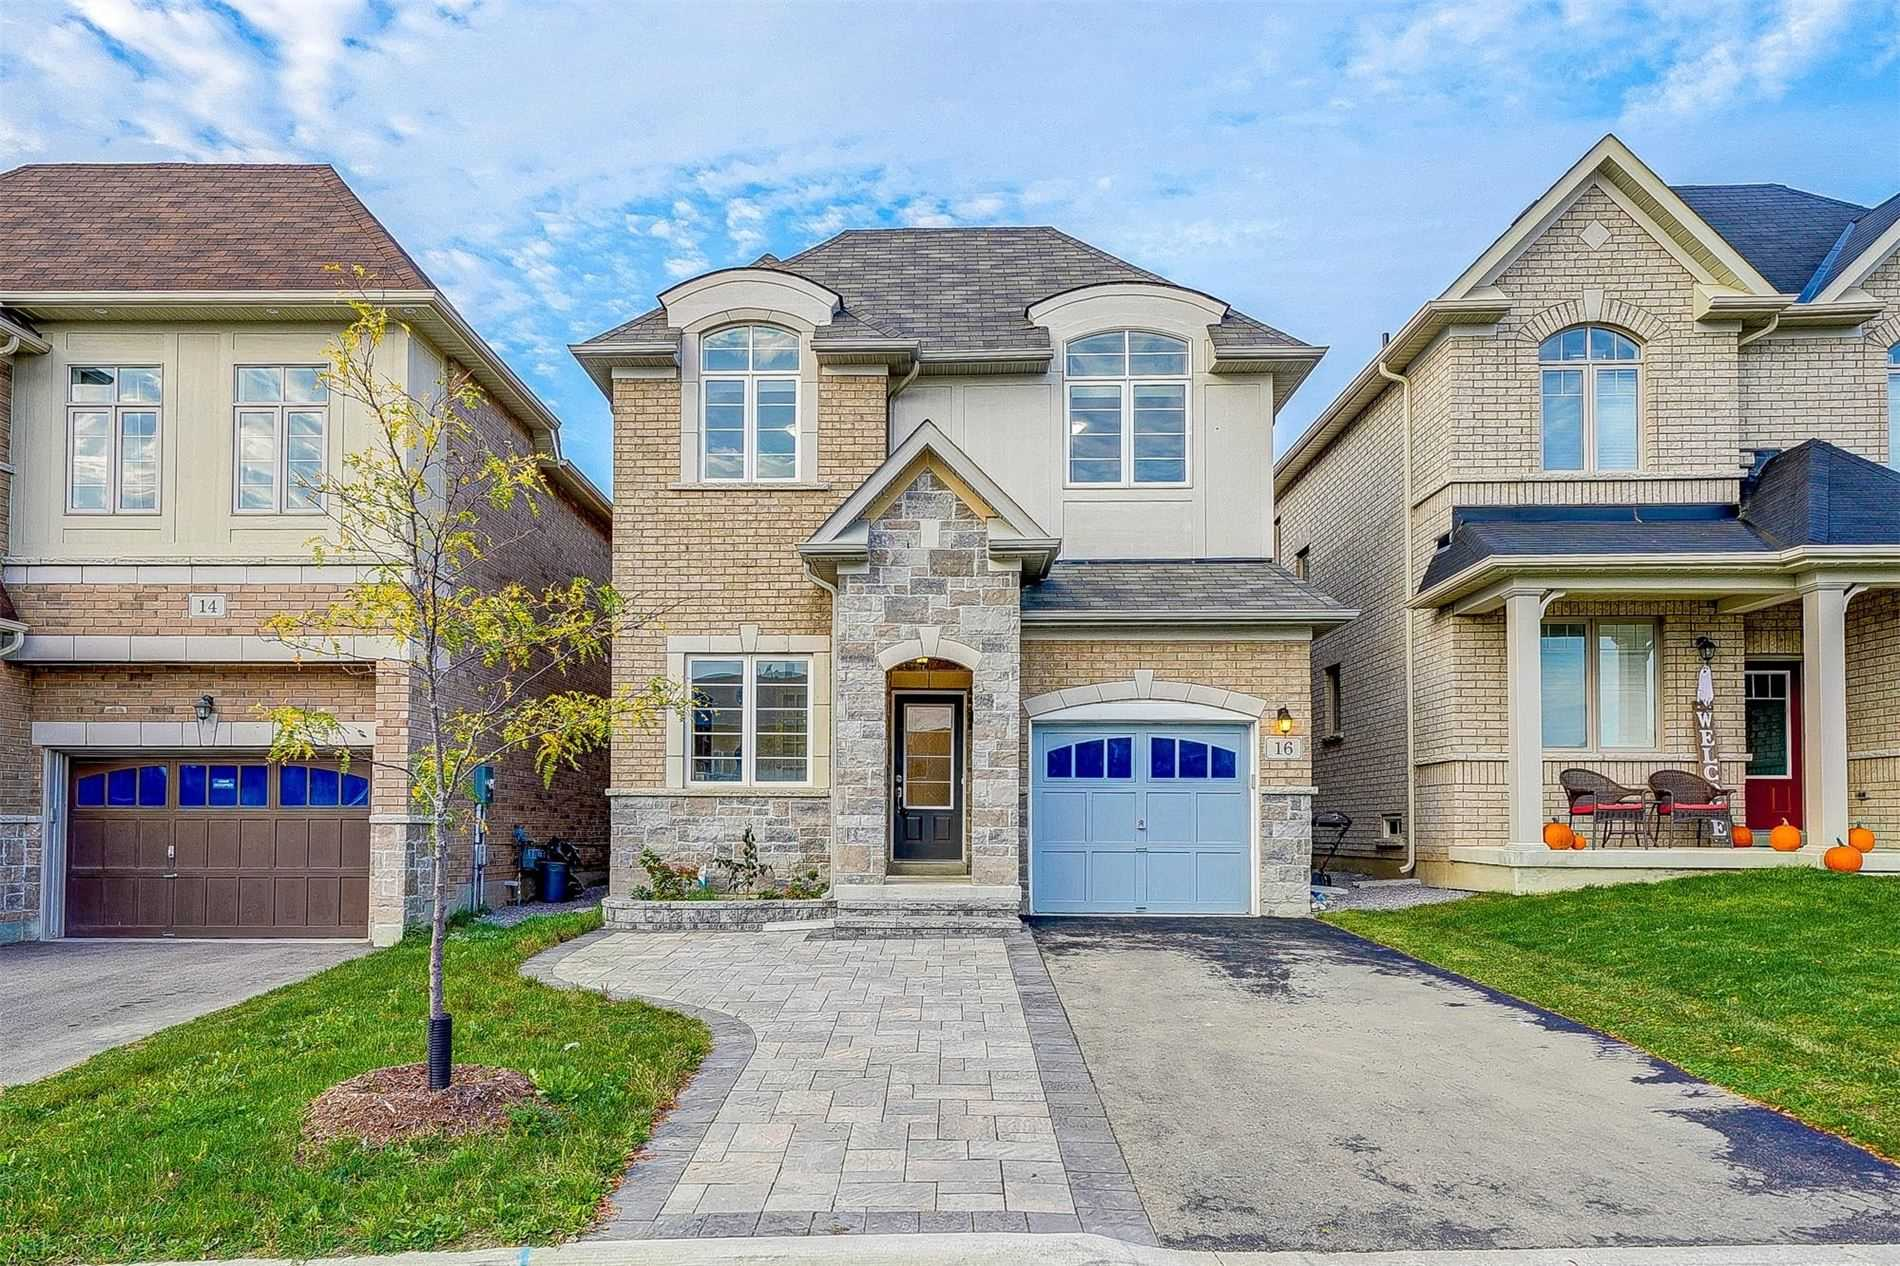 Detached house For Sale In East Gwillimbury